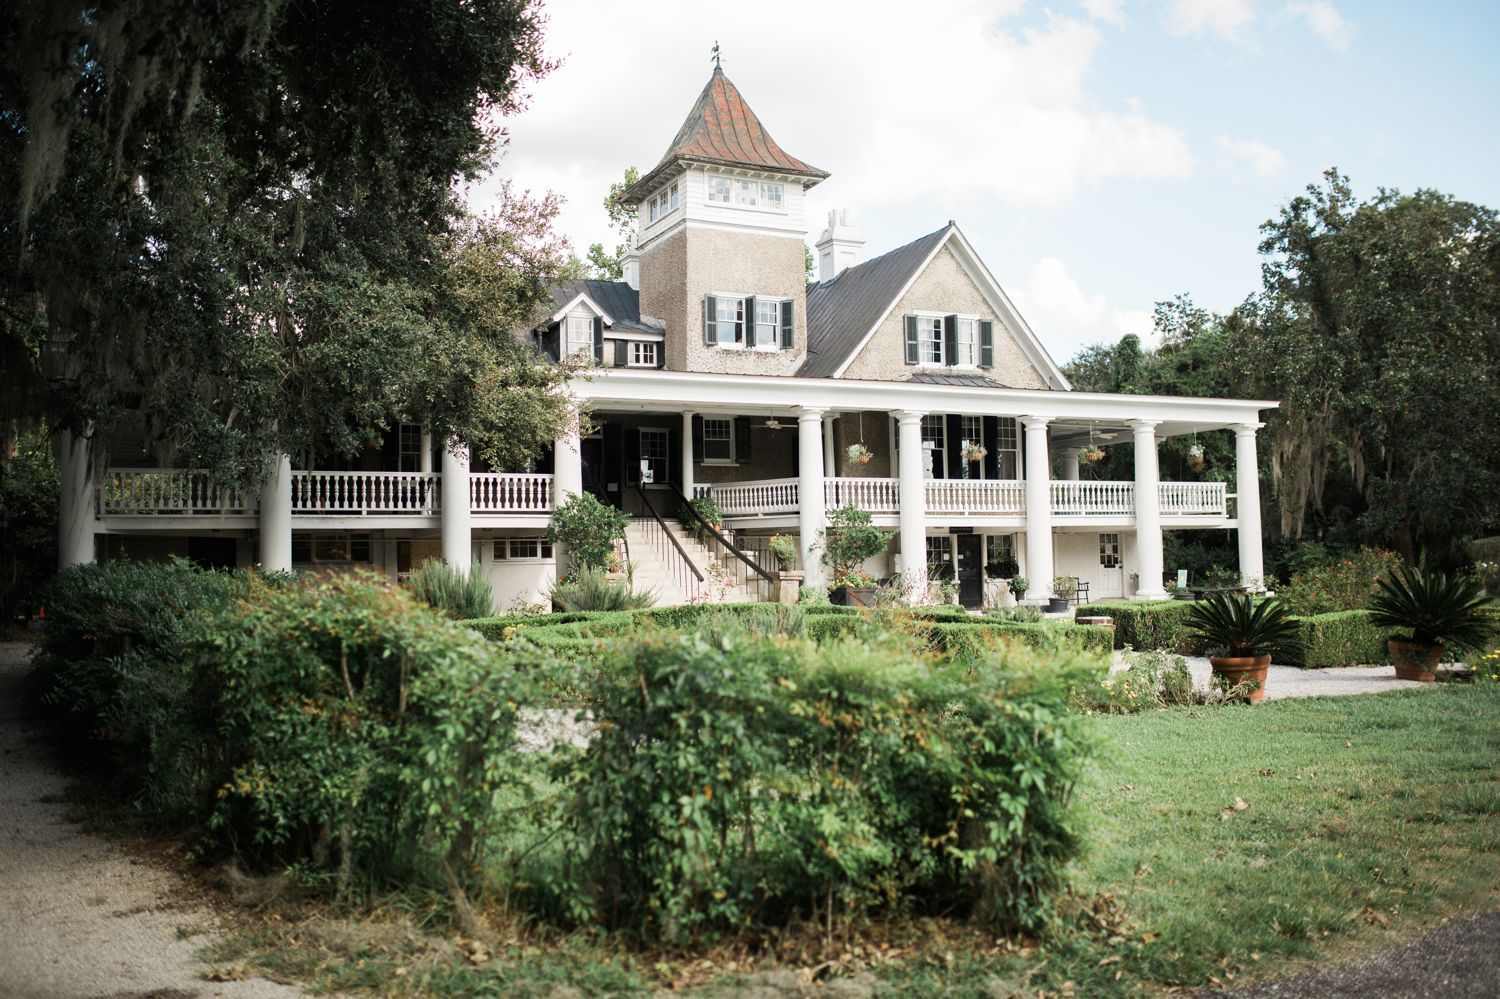 Magnolia's iconic Veranda (pictured above)